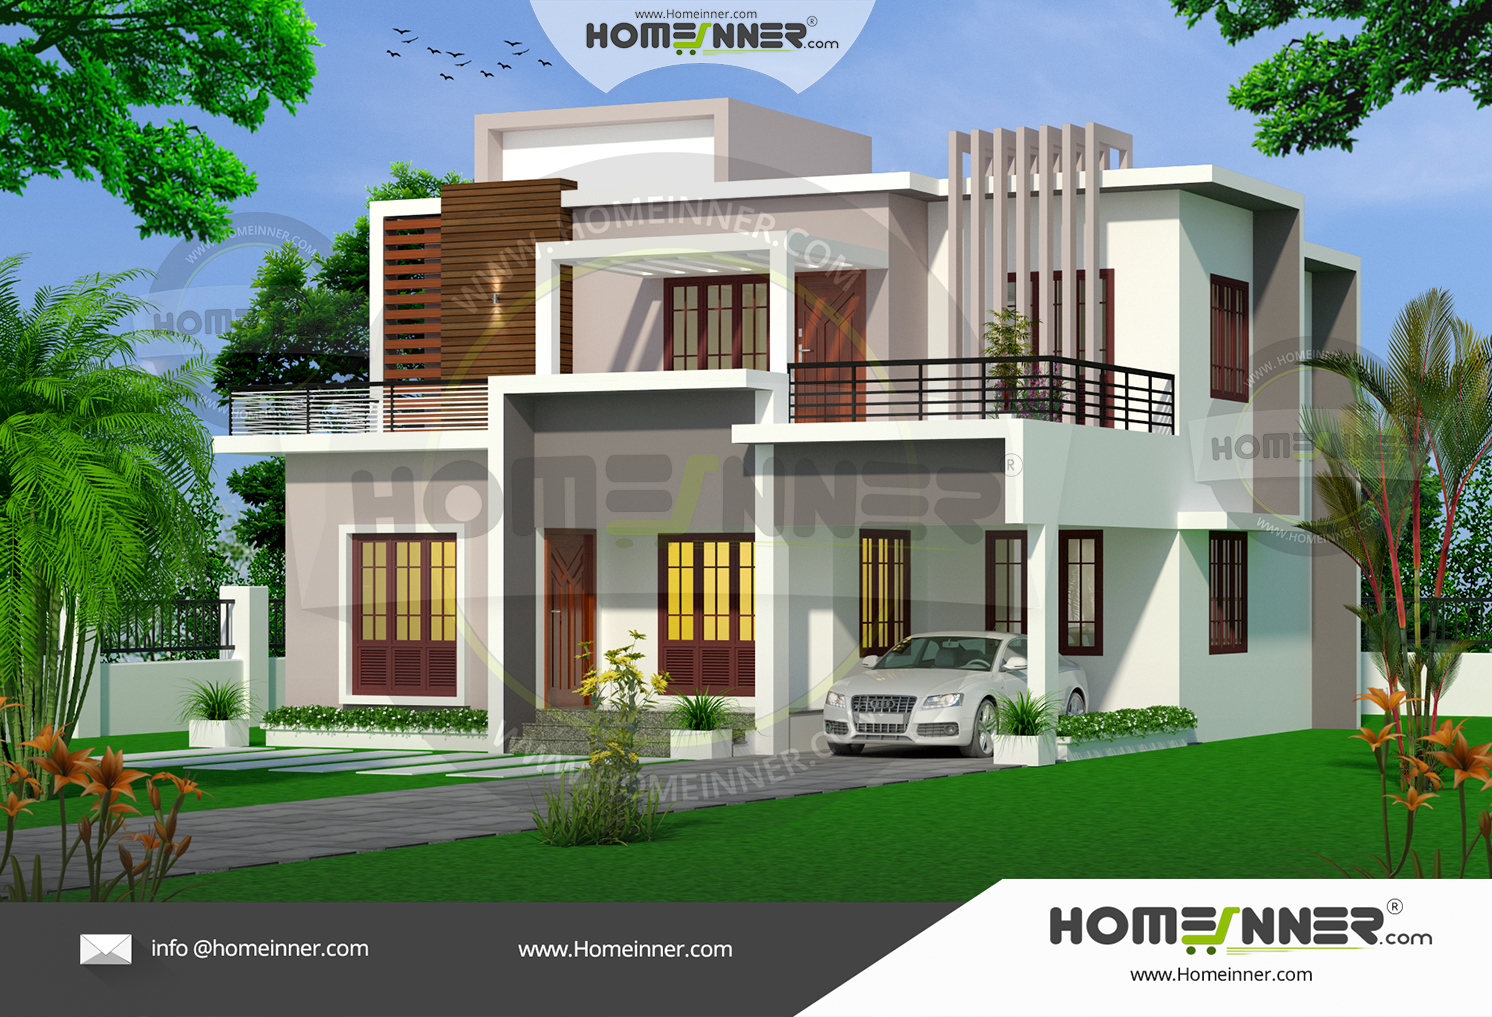 West Champaran 15 Lakh contemporary mansion floor plans